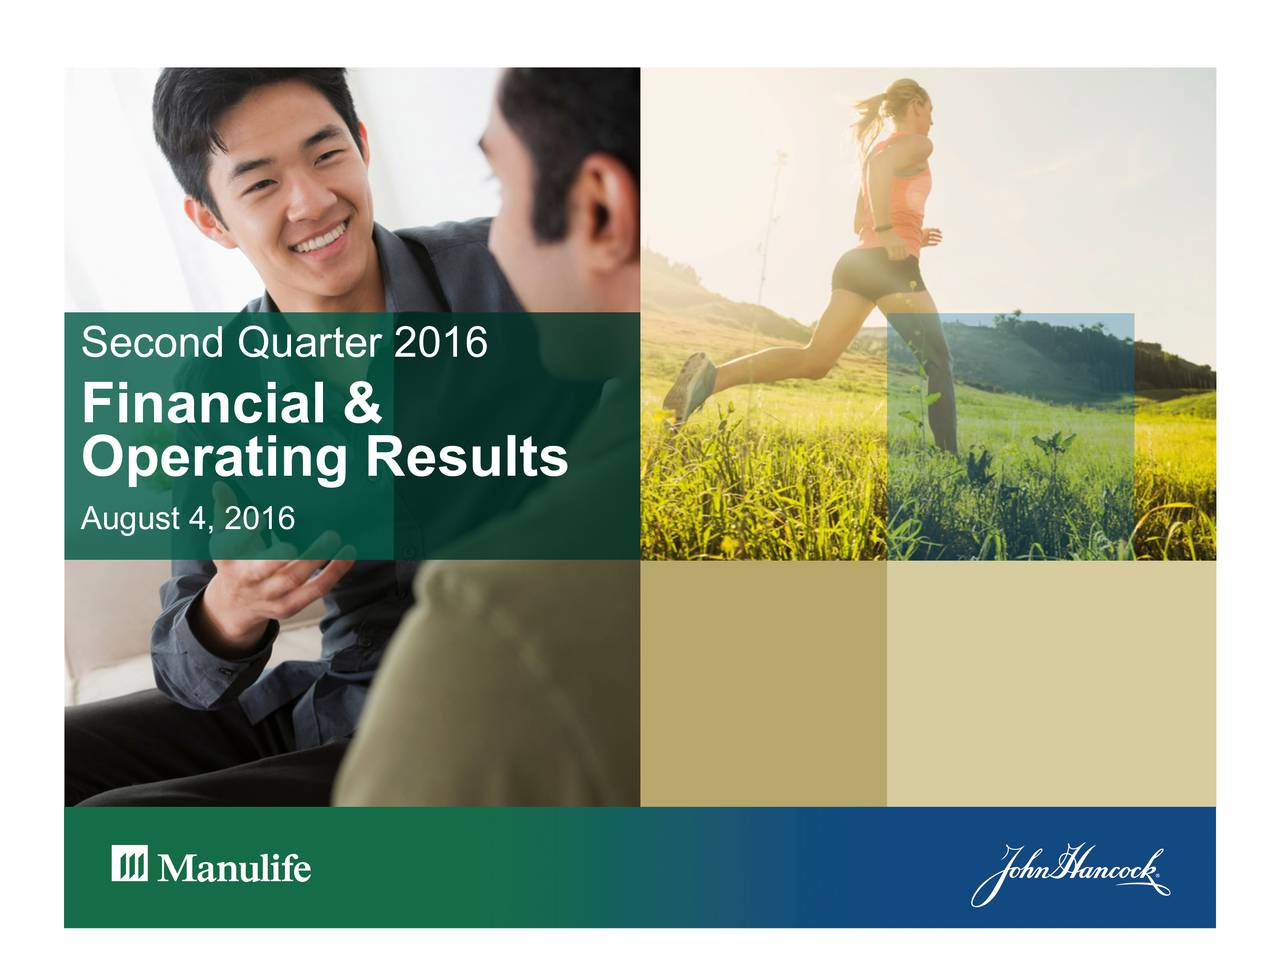 Financial & Operating Results August 4, 2016